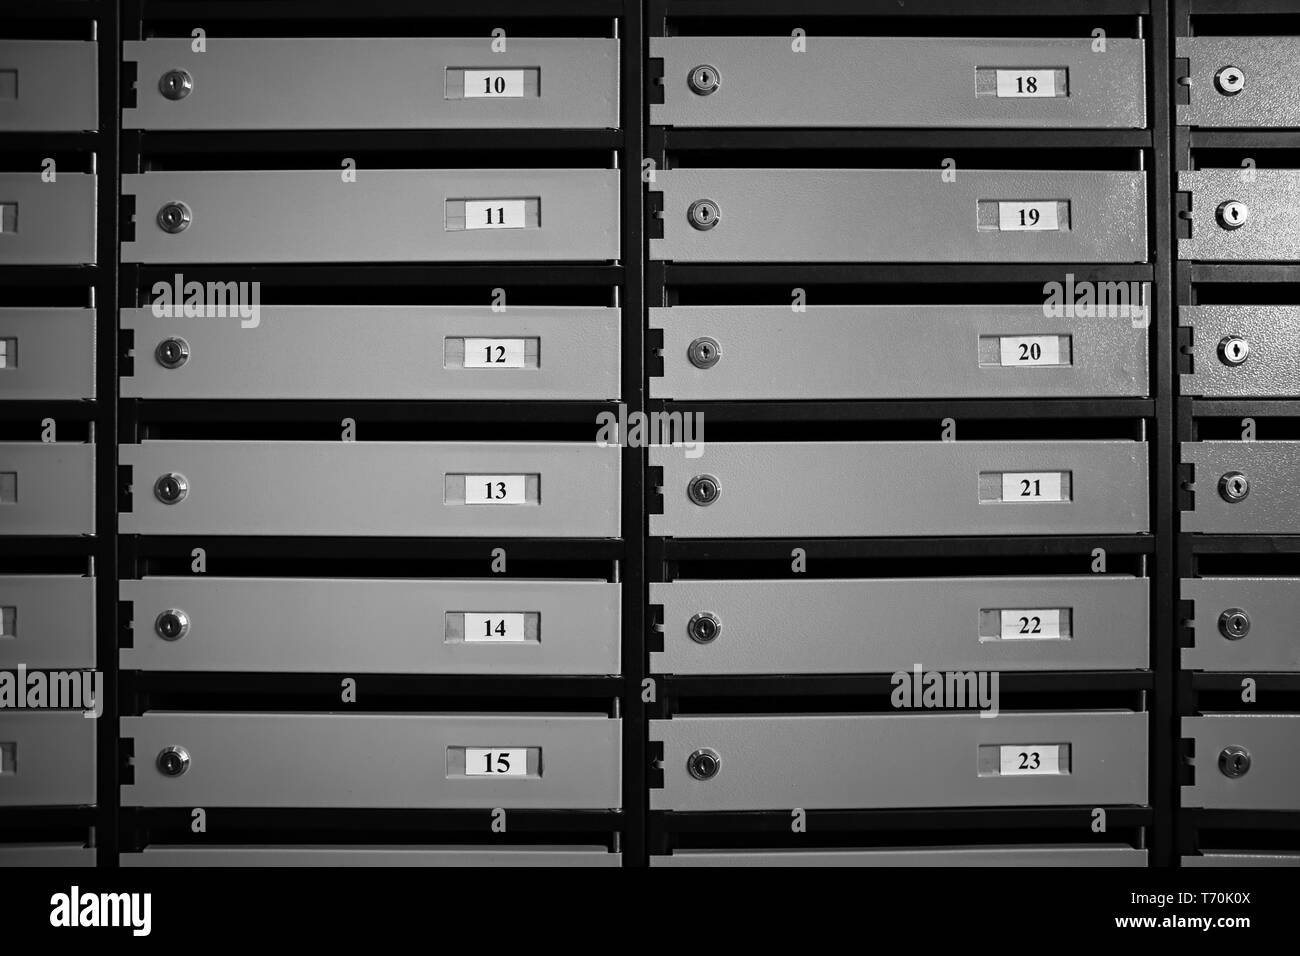 Mailboxes in residential building Stock Photo